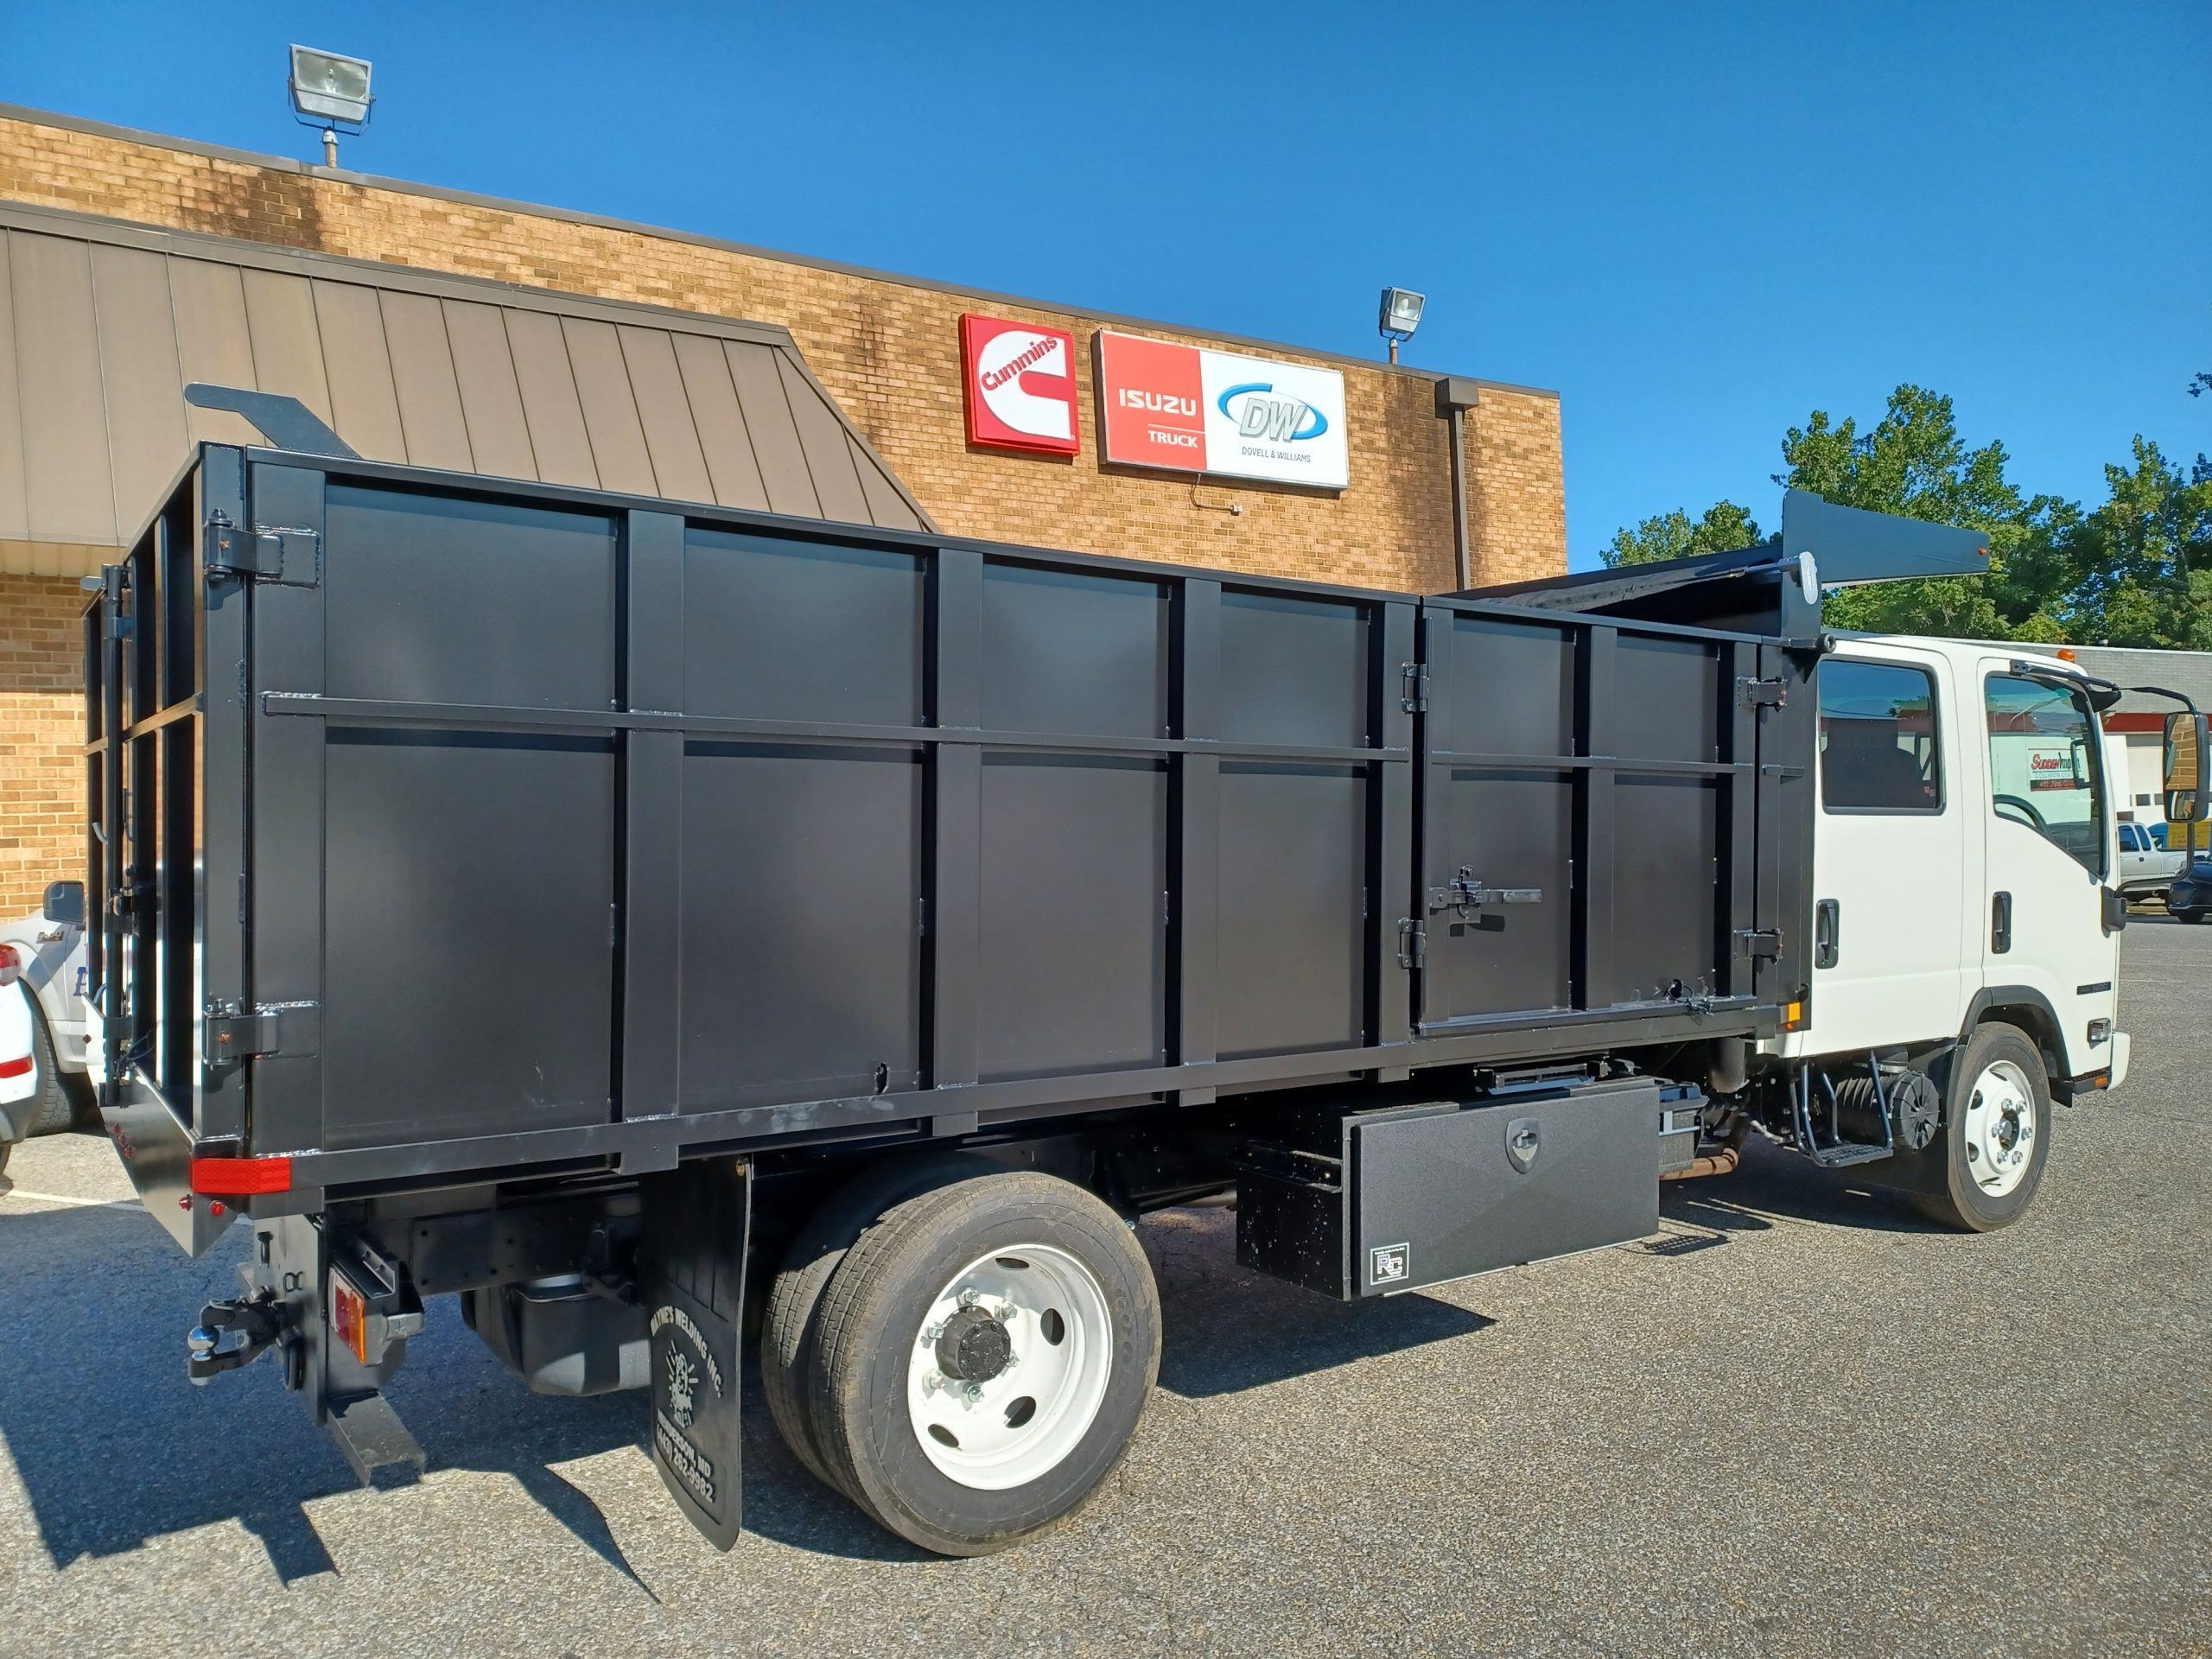 2021 NRR Dump Body 19500gvwr Gas Motor Payload of 8500lbs Crew Cab 7 passenger seating 20210903_092639-scaled